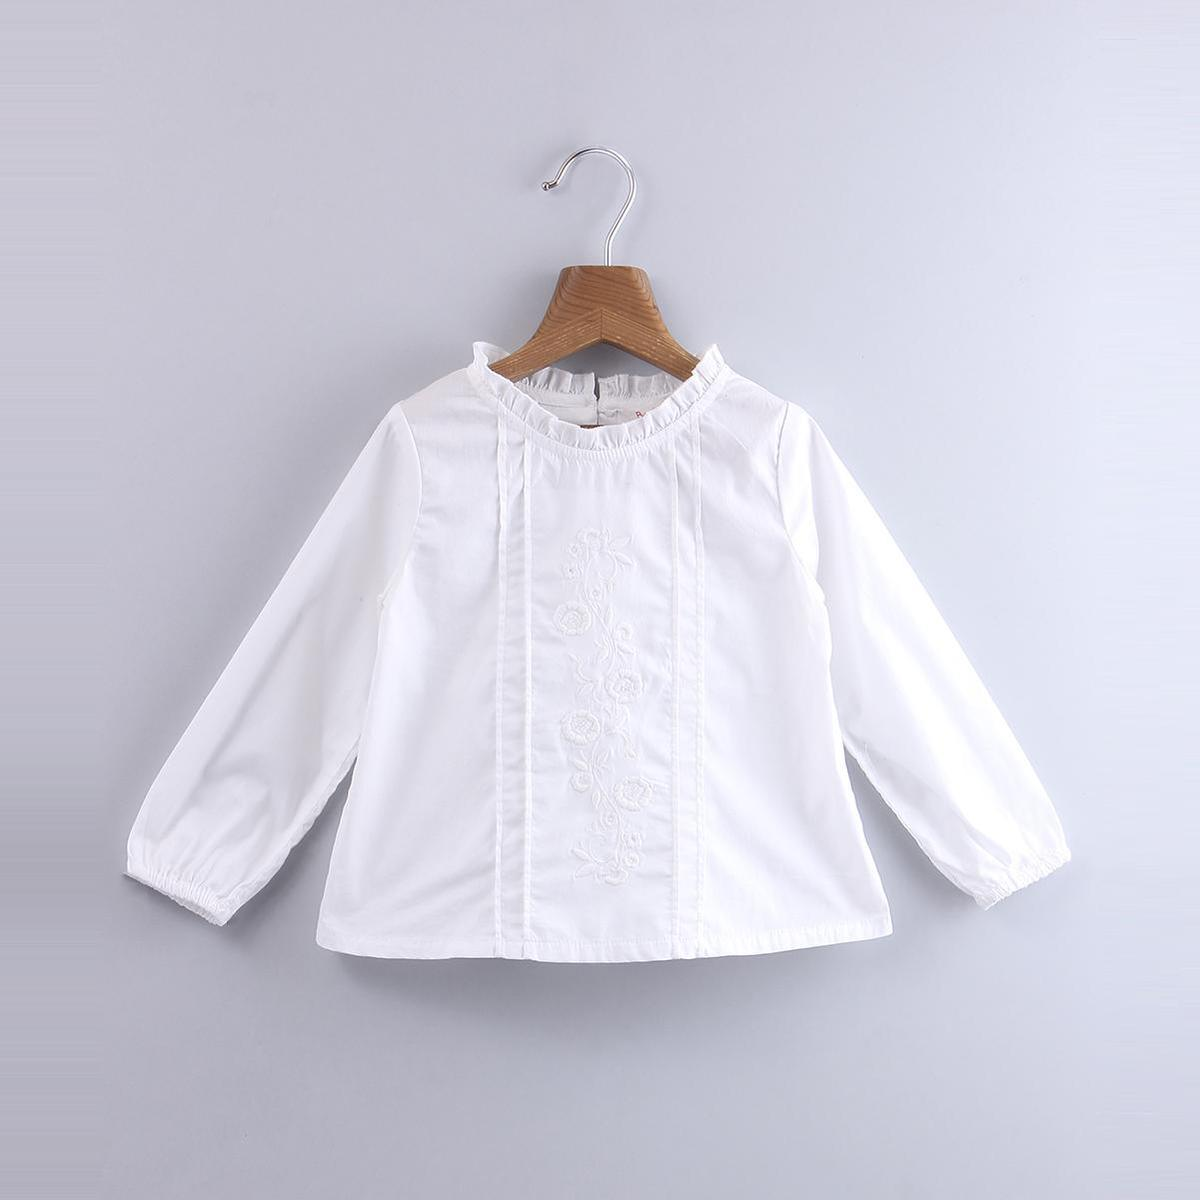 Beebay - White Colored Embroidered Ruffle Cotton Top For Infants Girls